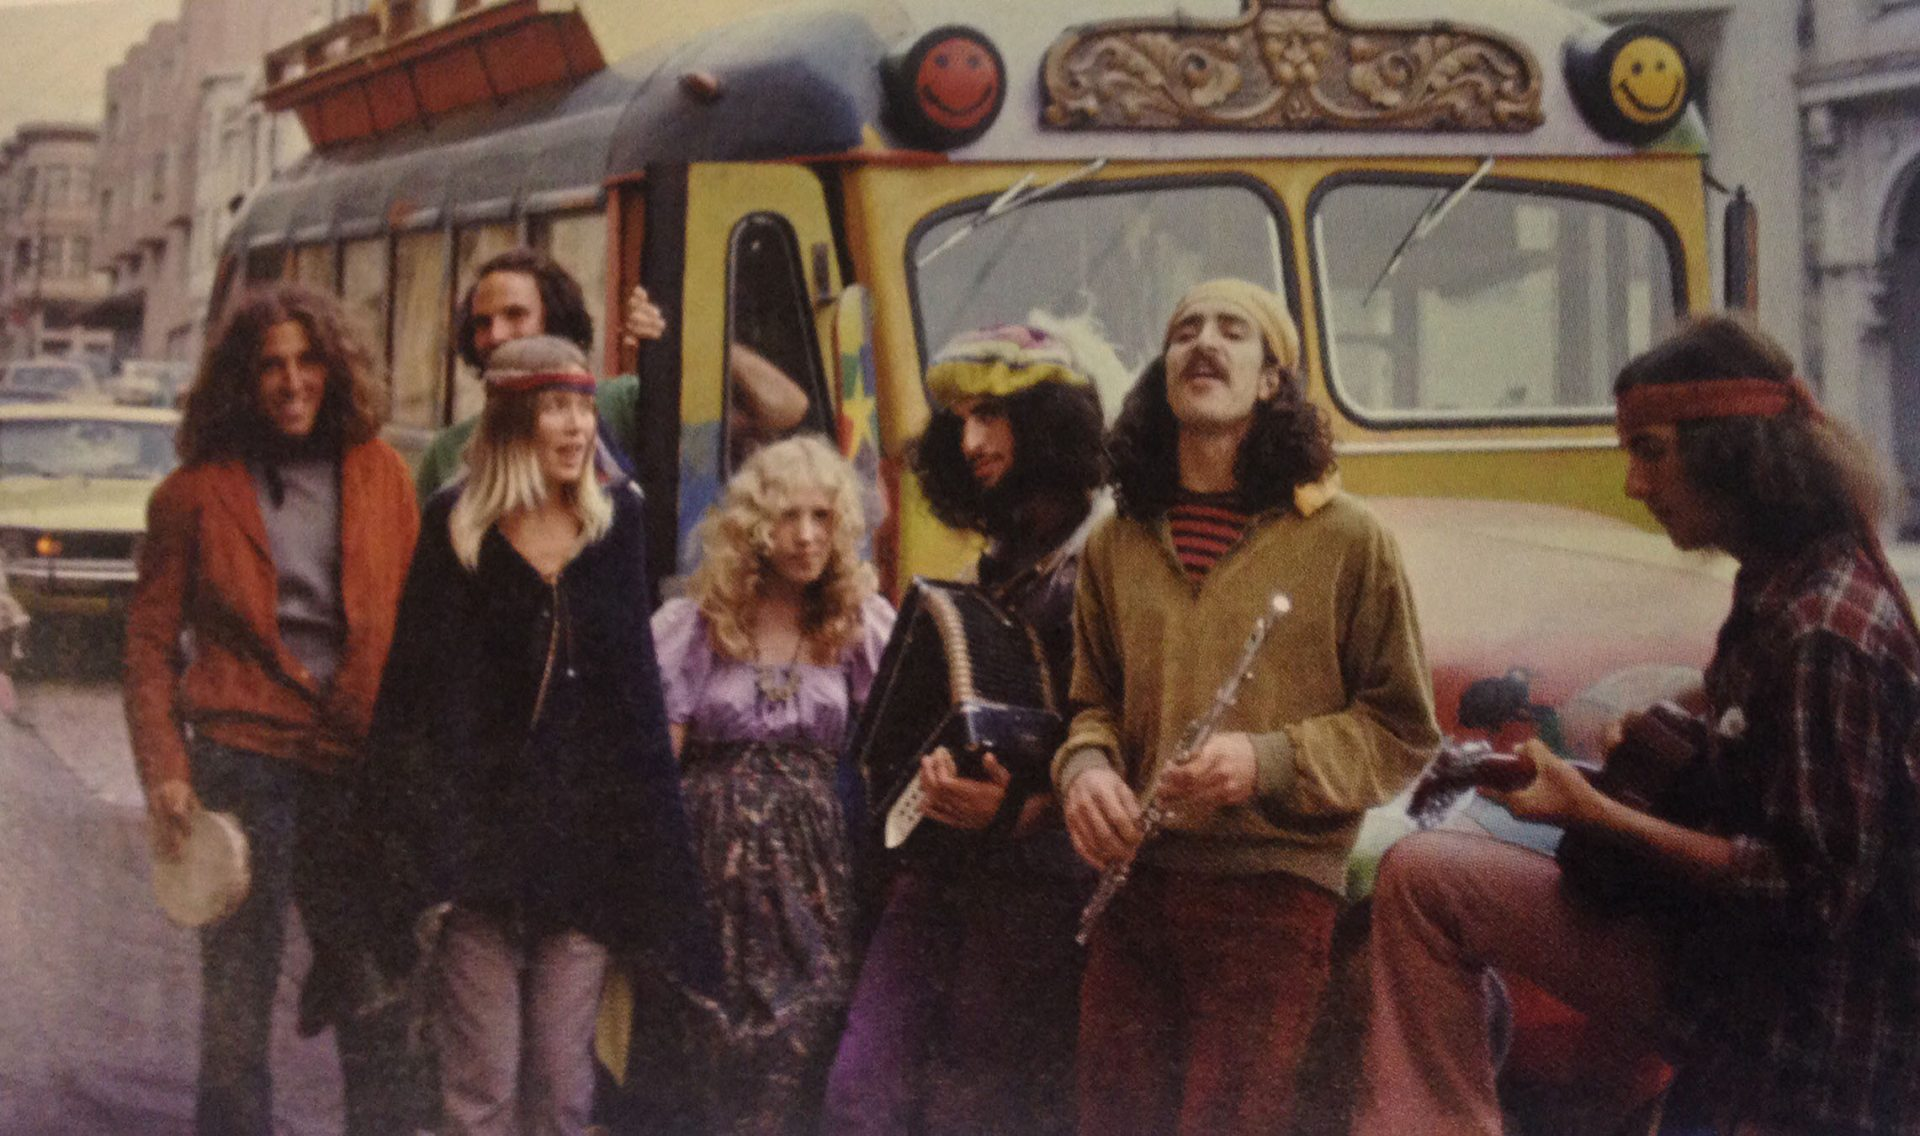 photo from the hippy movement in the 60s